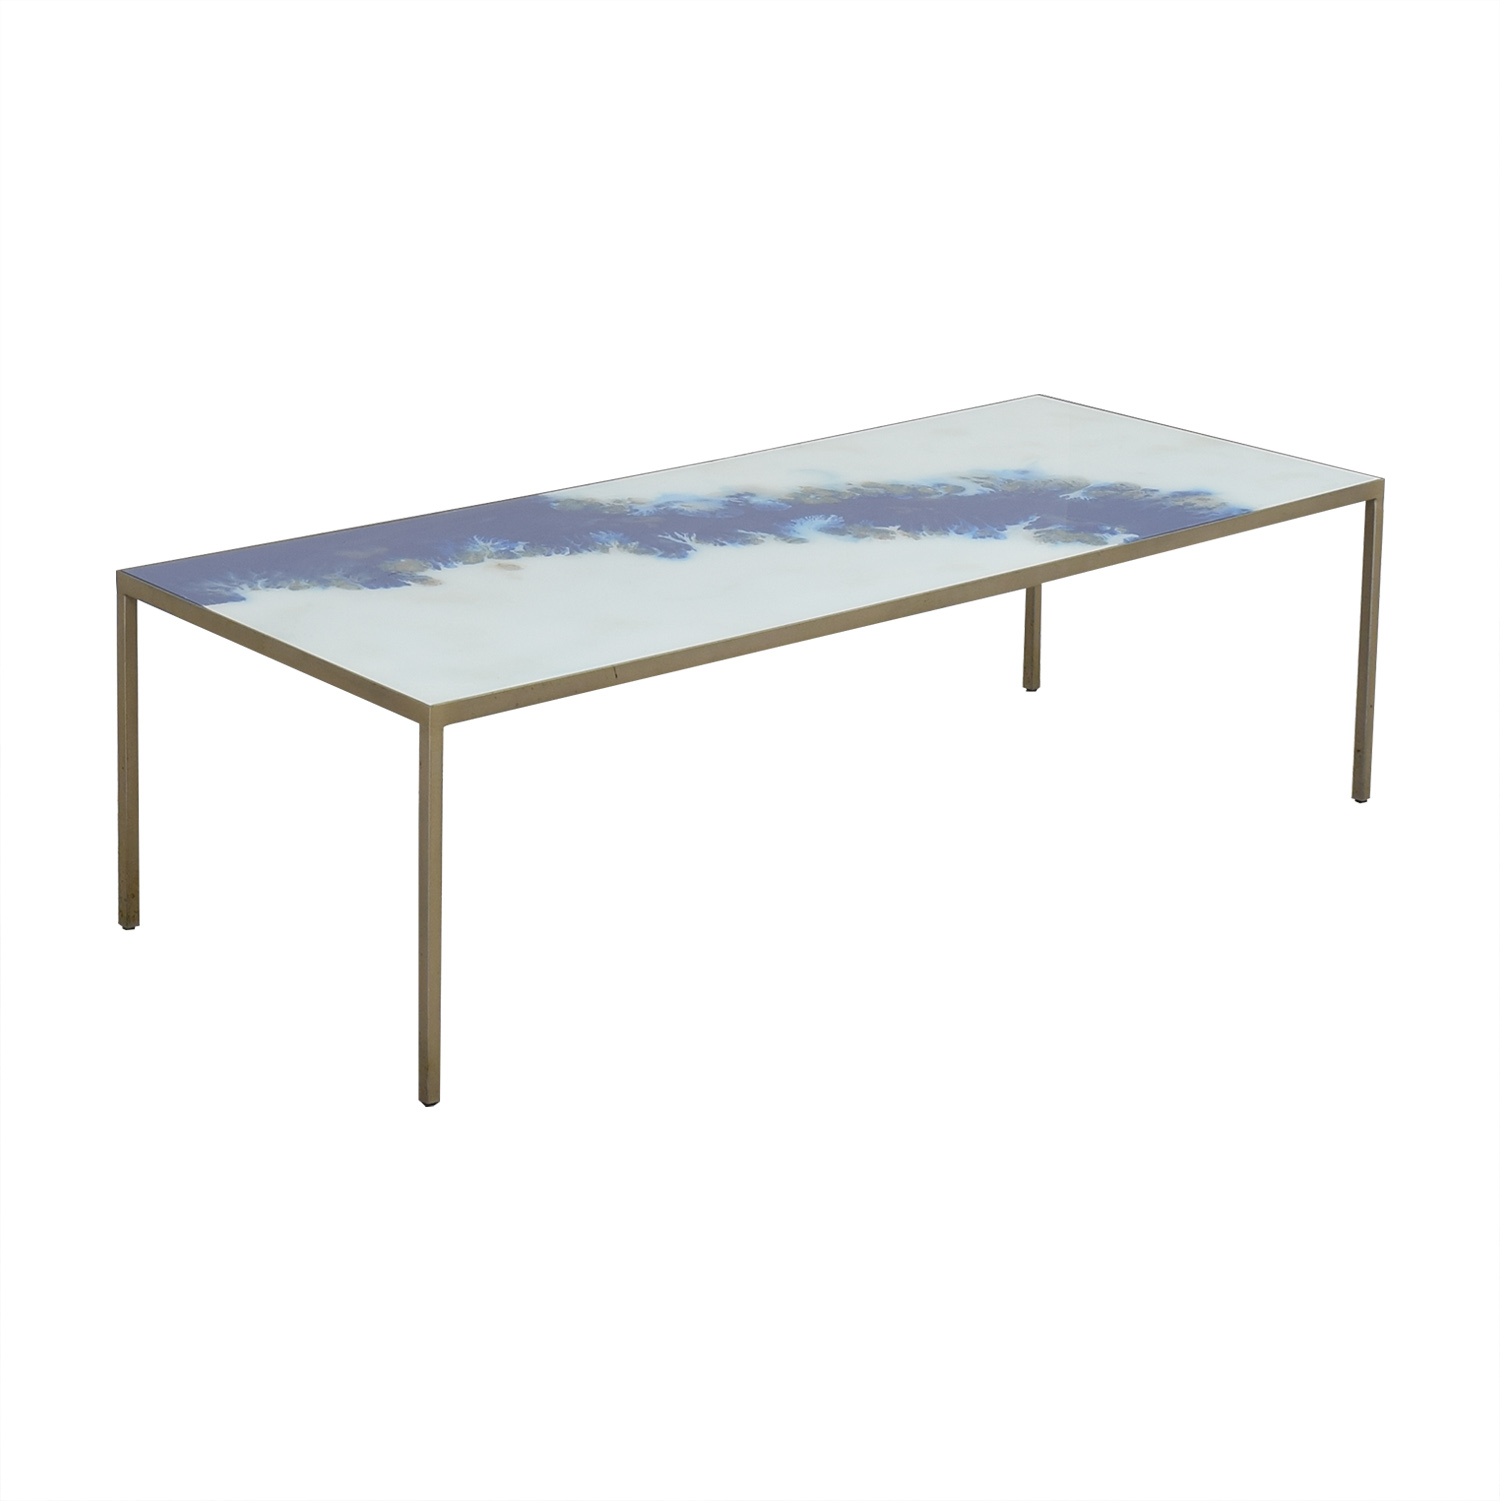 West Elm West Elm Cosmos Coffee Table nyc